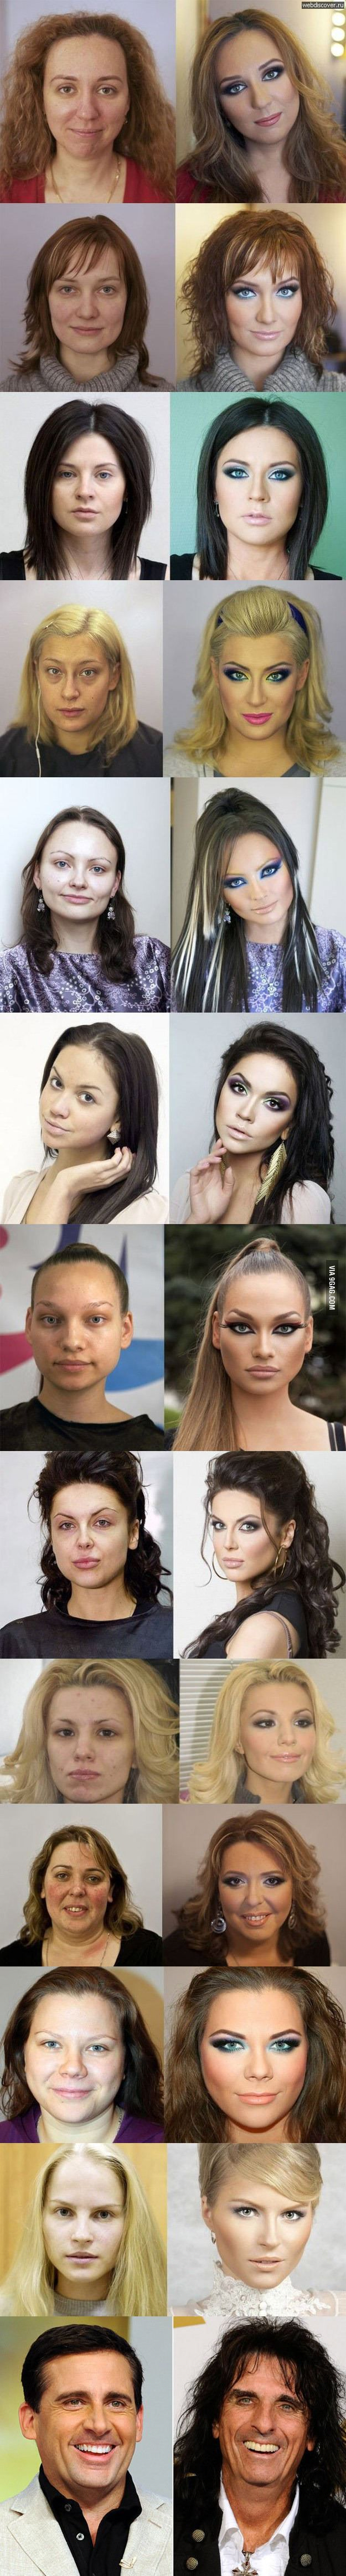 Makeup changes everything. The third to the last one is the most drastic